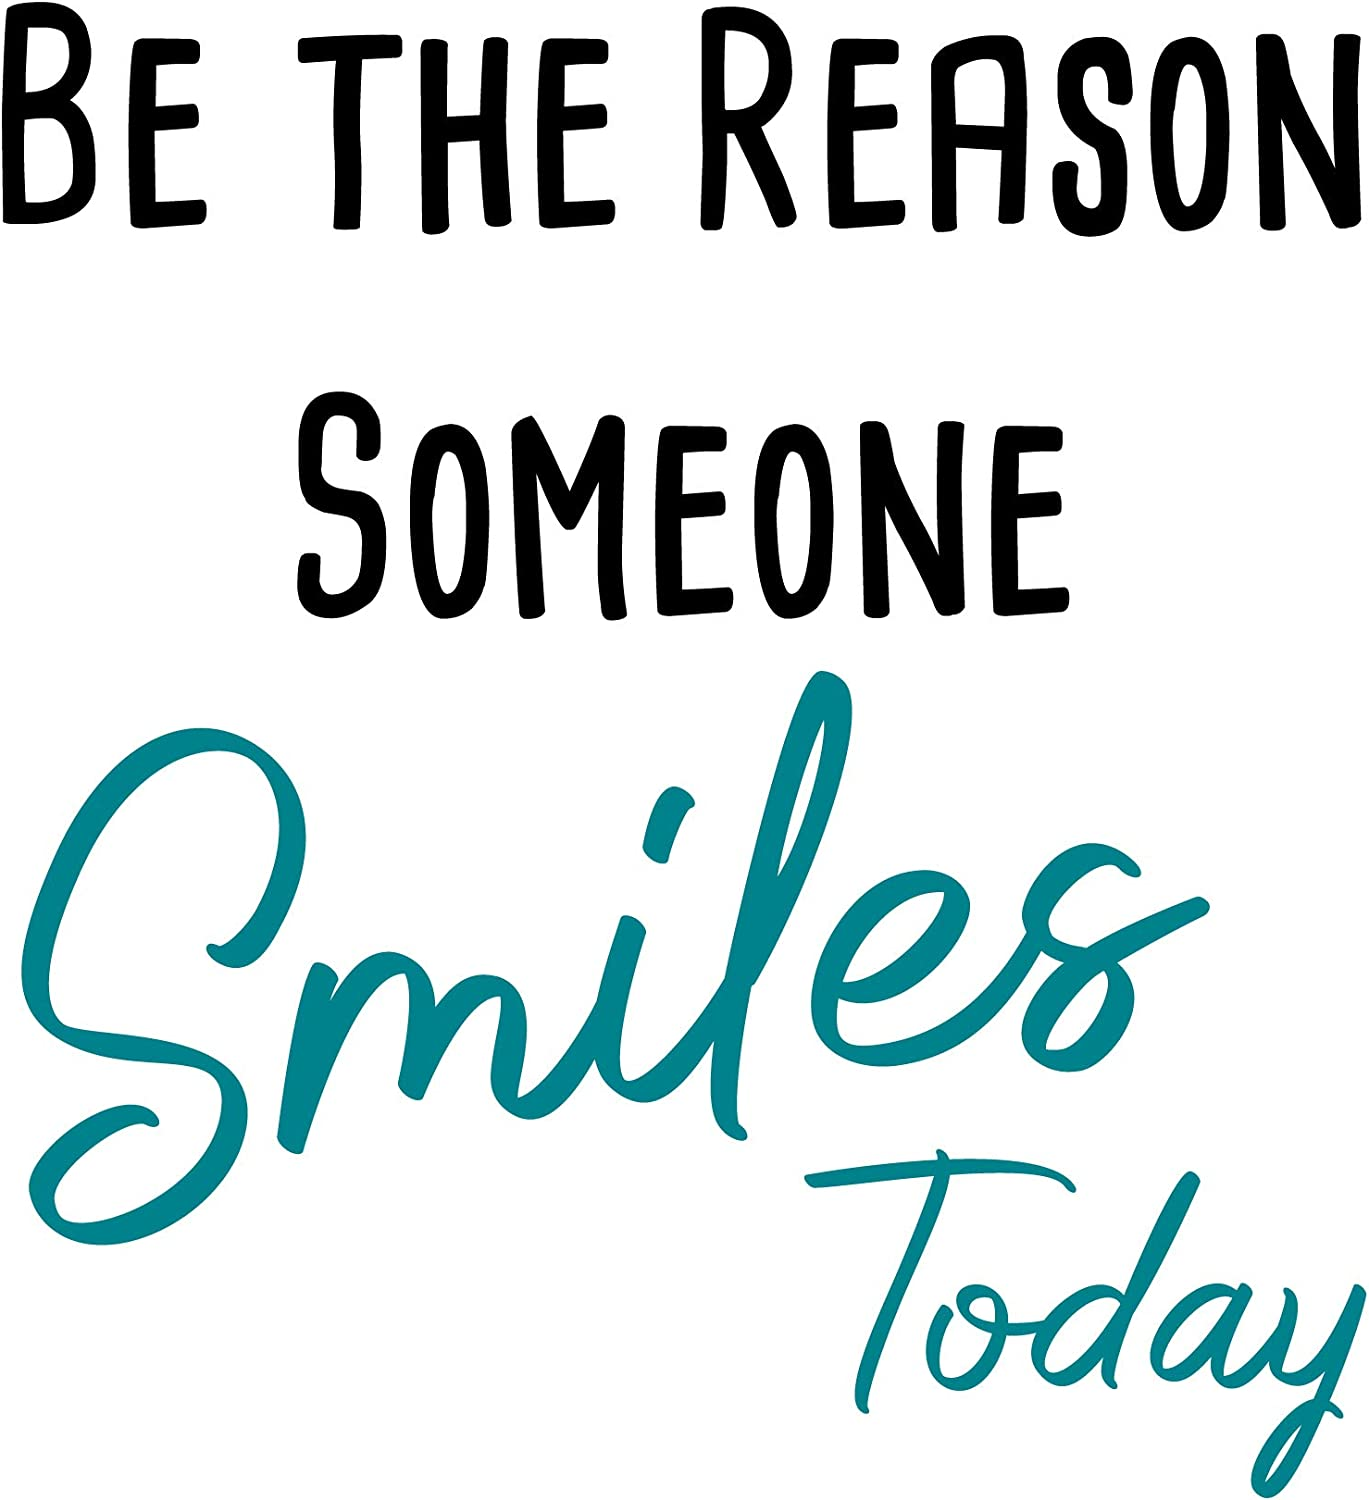 Be The Reason Someone Smiles Today-Inspirational Quotes Wall Decals-Vinyl Stickers for Bedroom Living Room School Office Home Decor